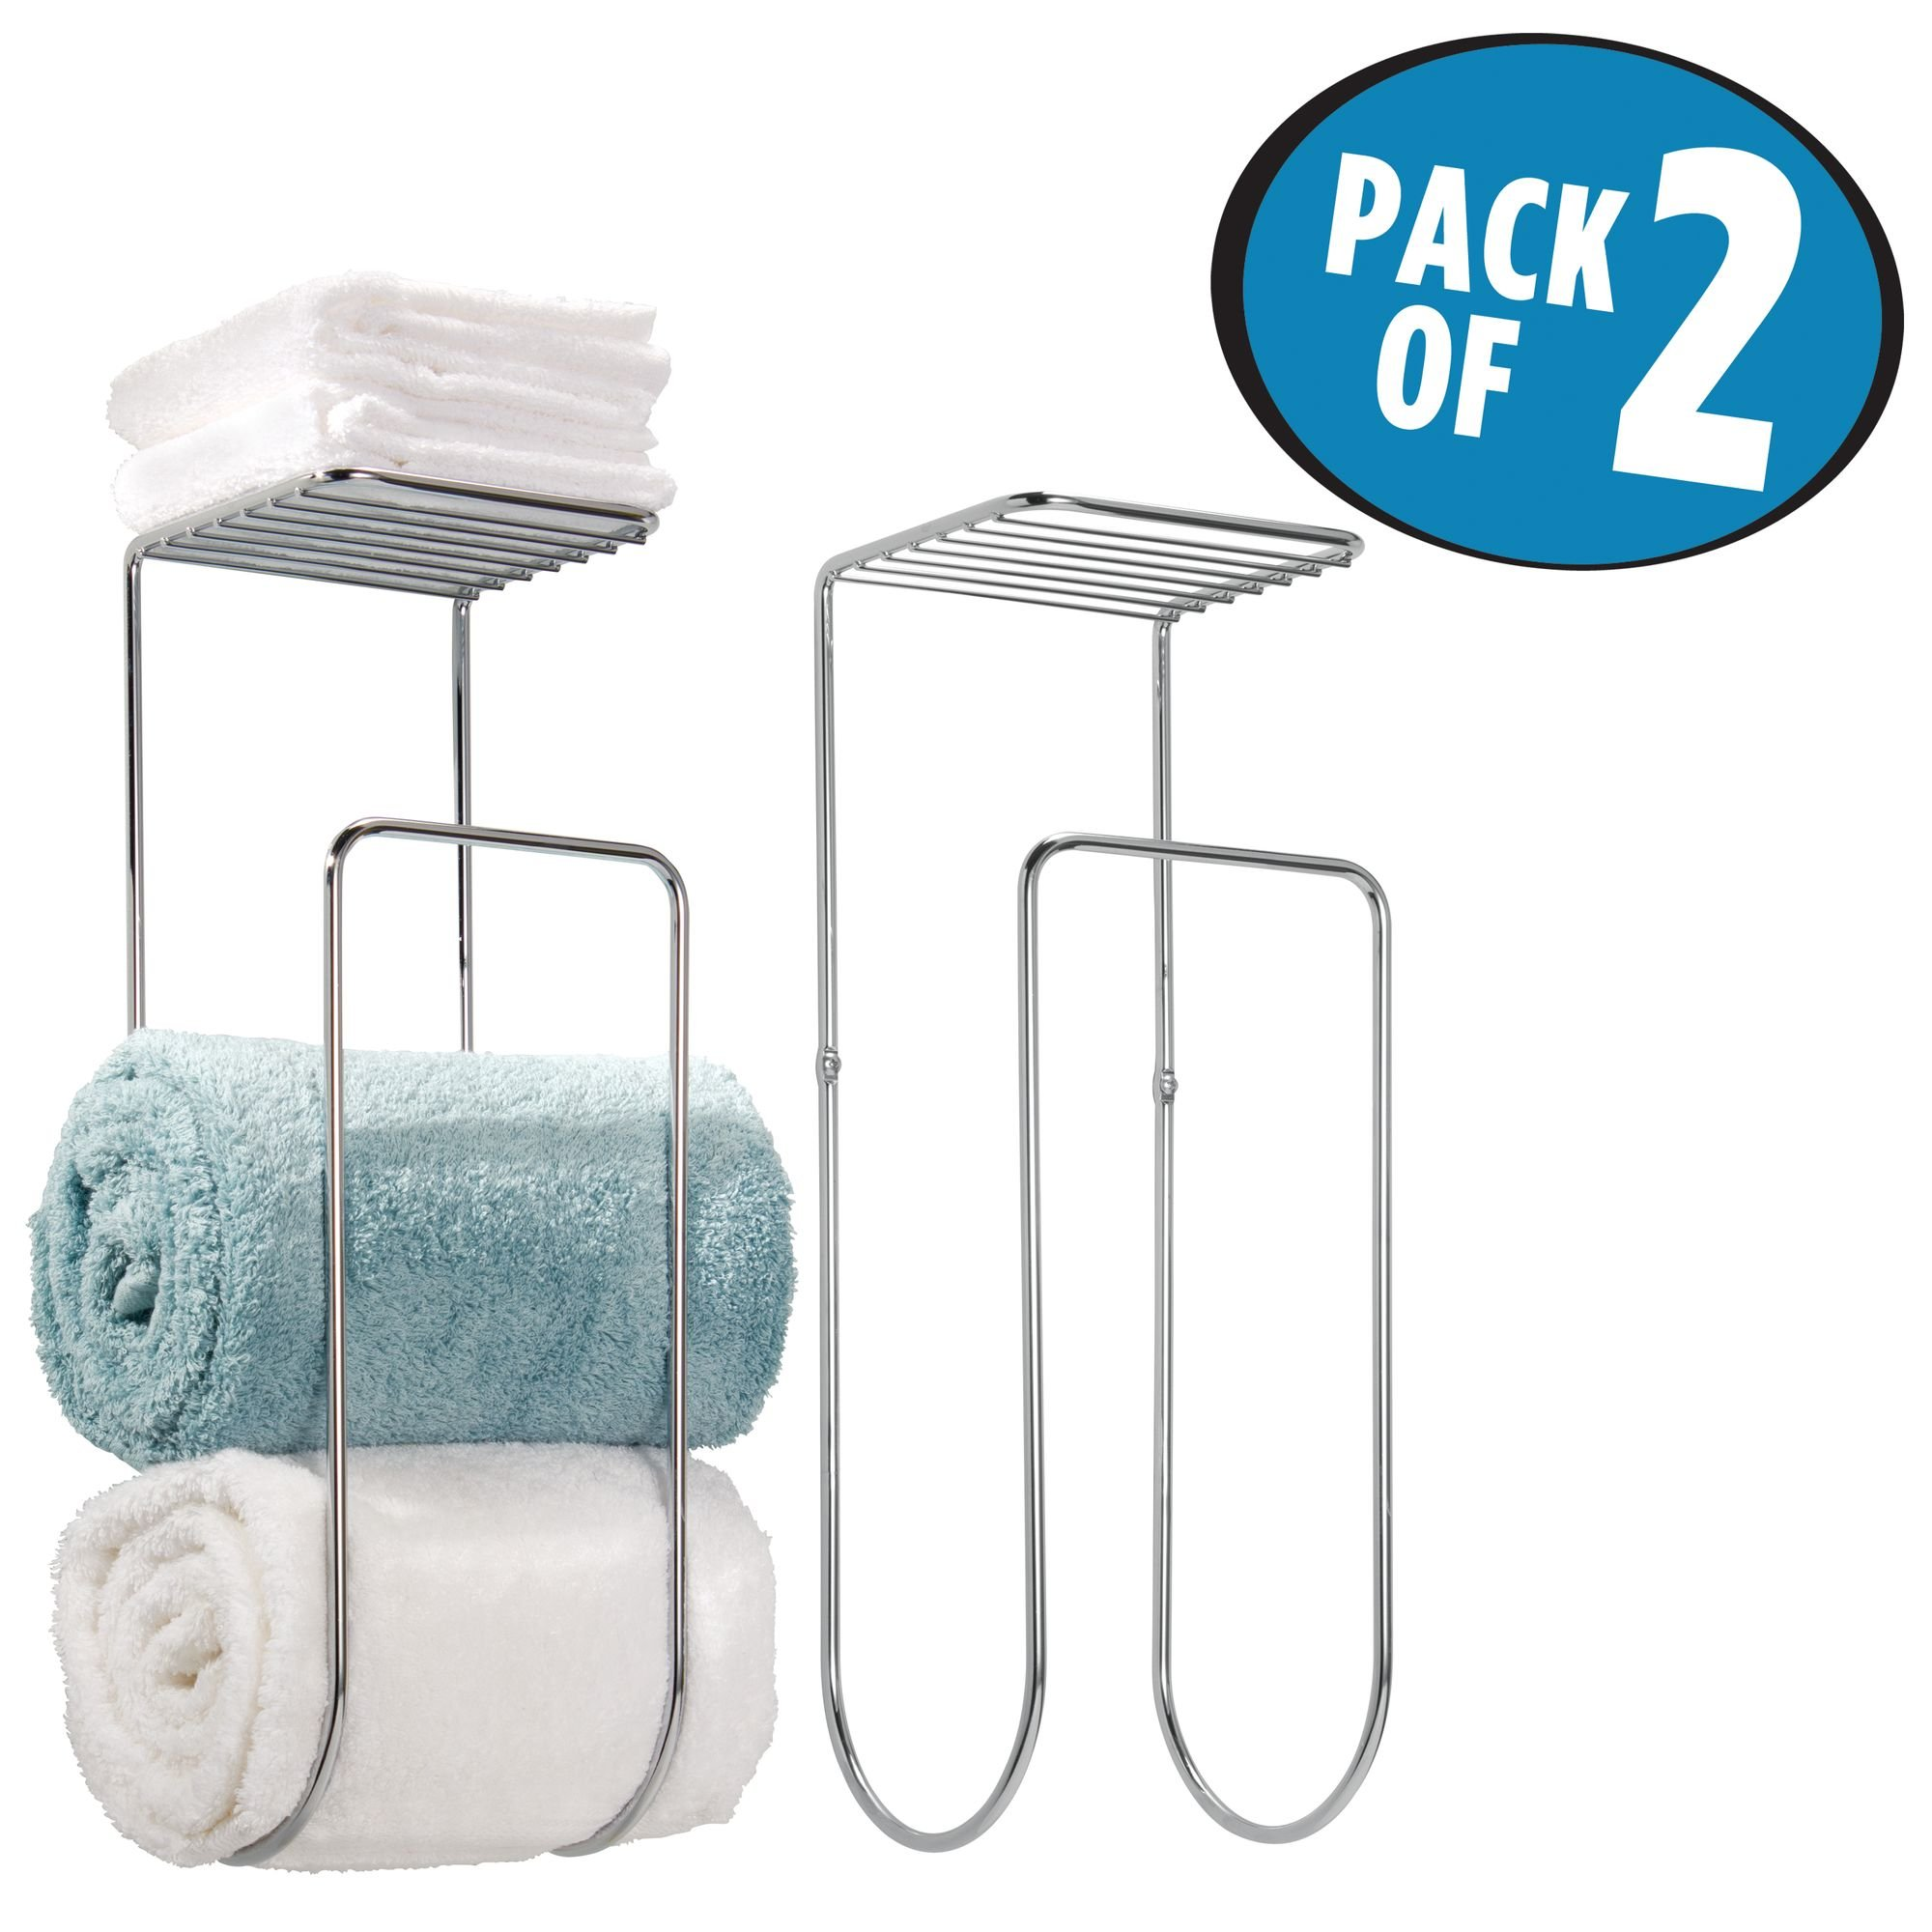 mDesign Wall Mount Towel Rack With Shelf for Bathroom or Linen Closet - Pack of 2, Chrome